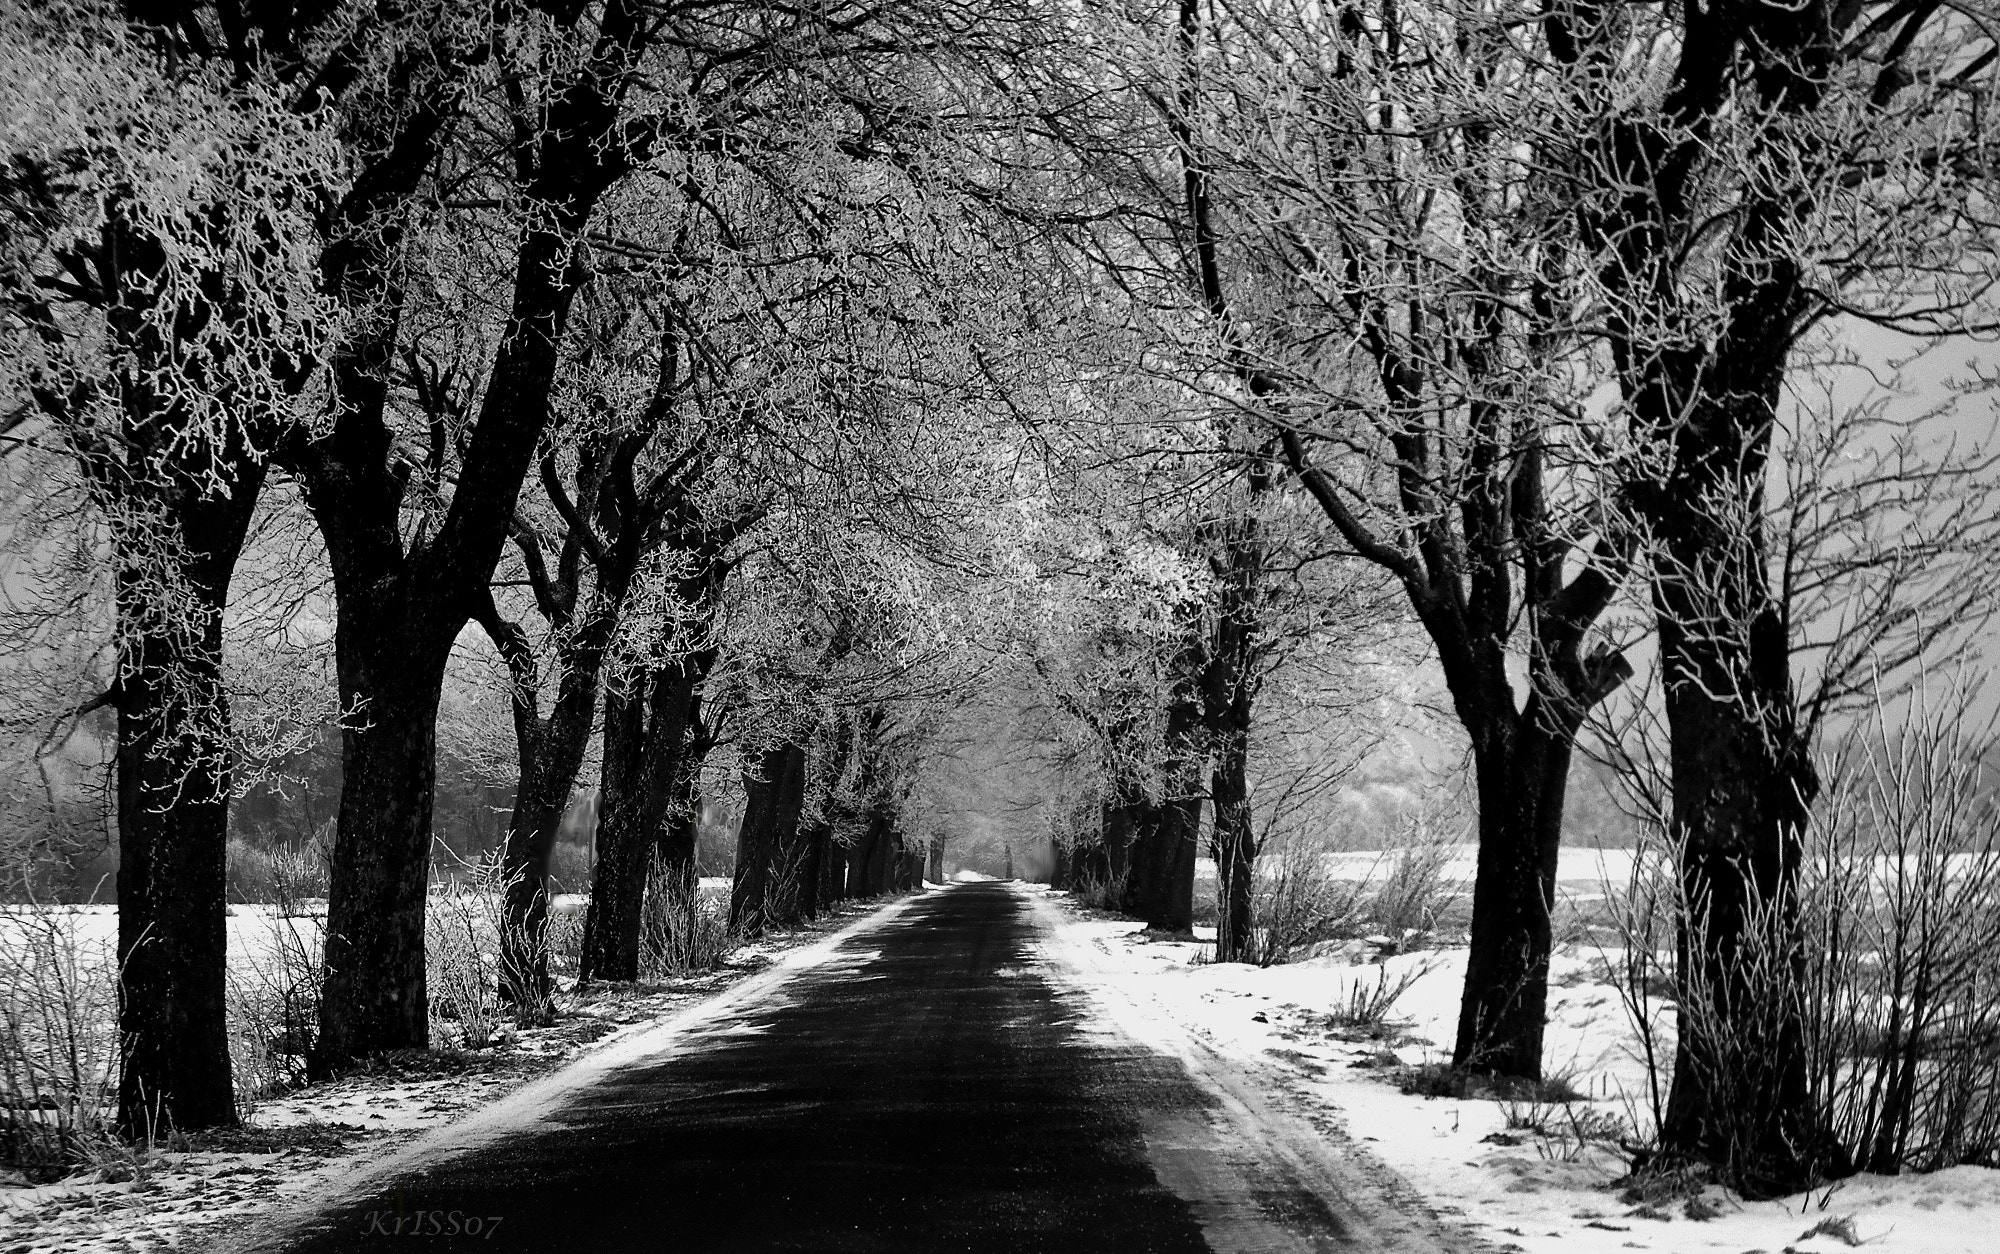 Photograph Frosty road by KrISS Ch. on 500px